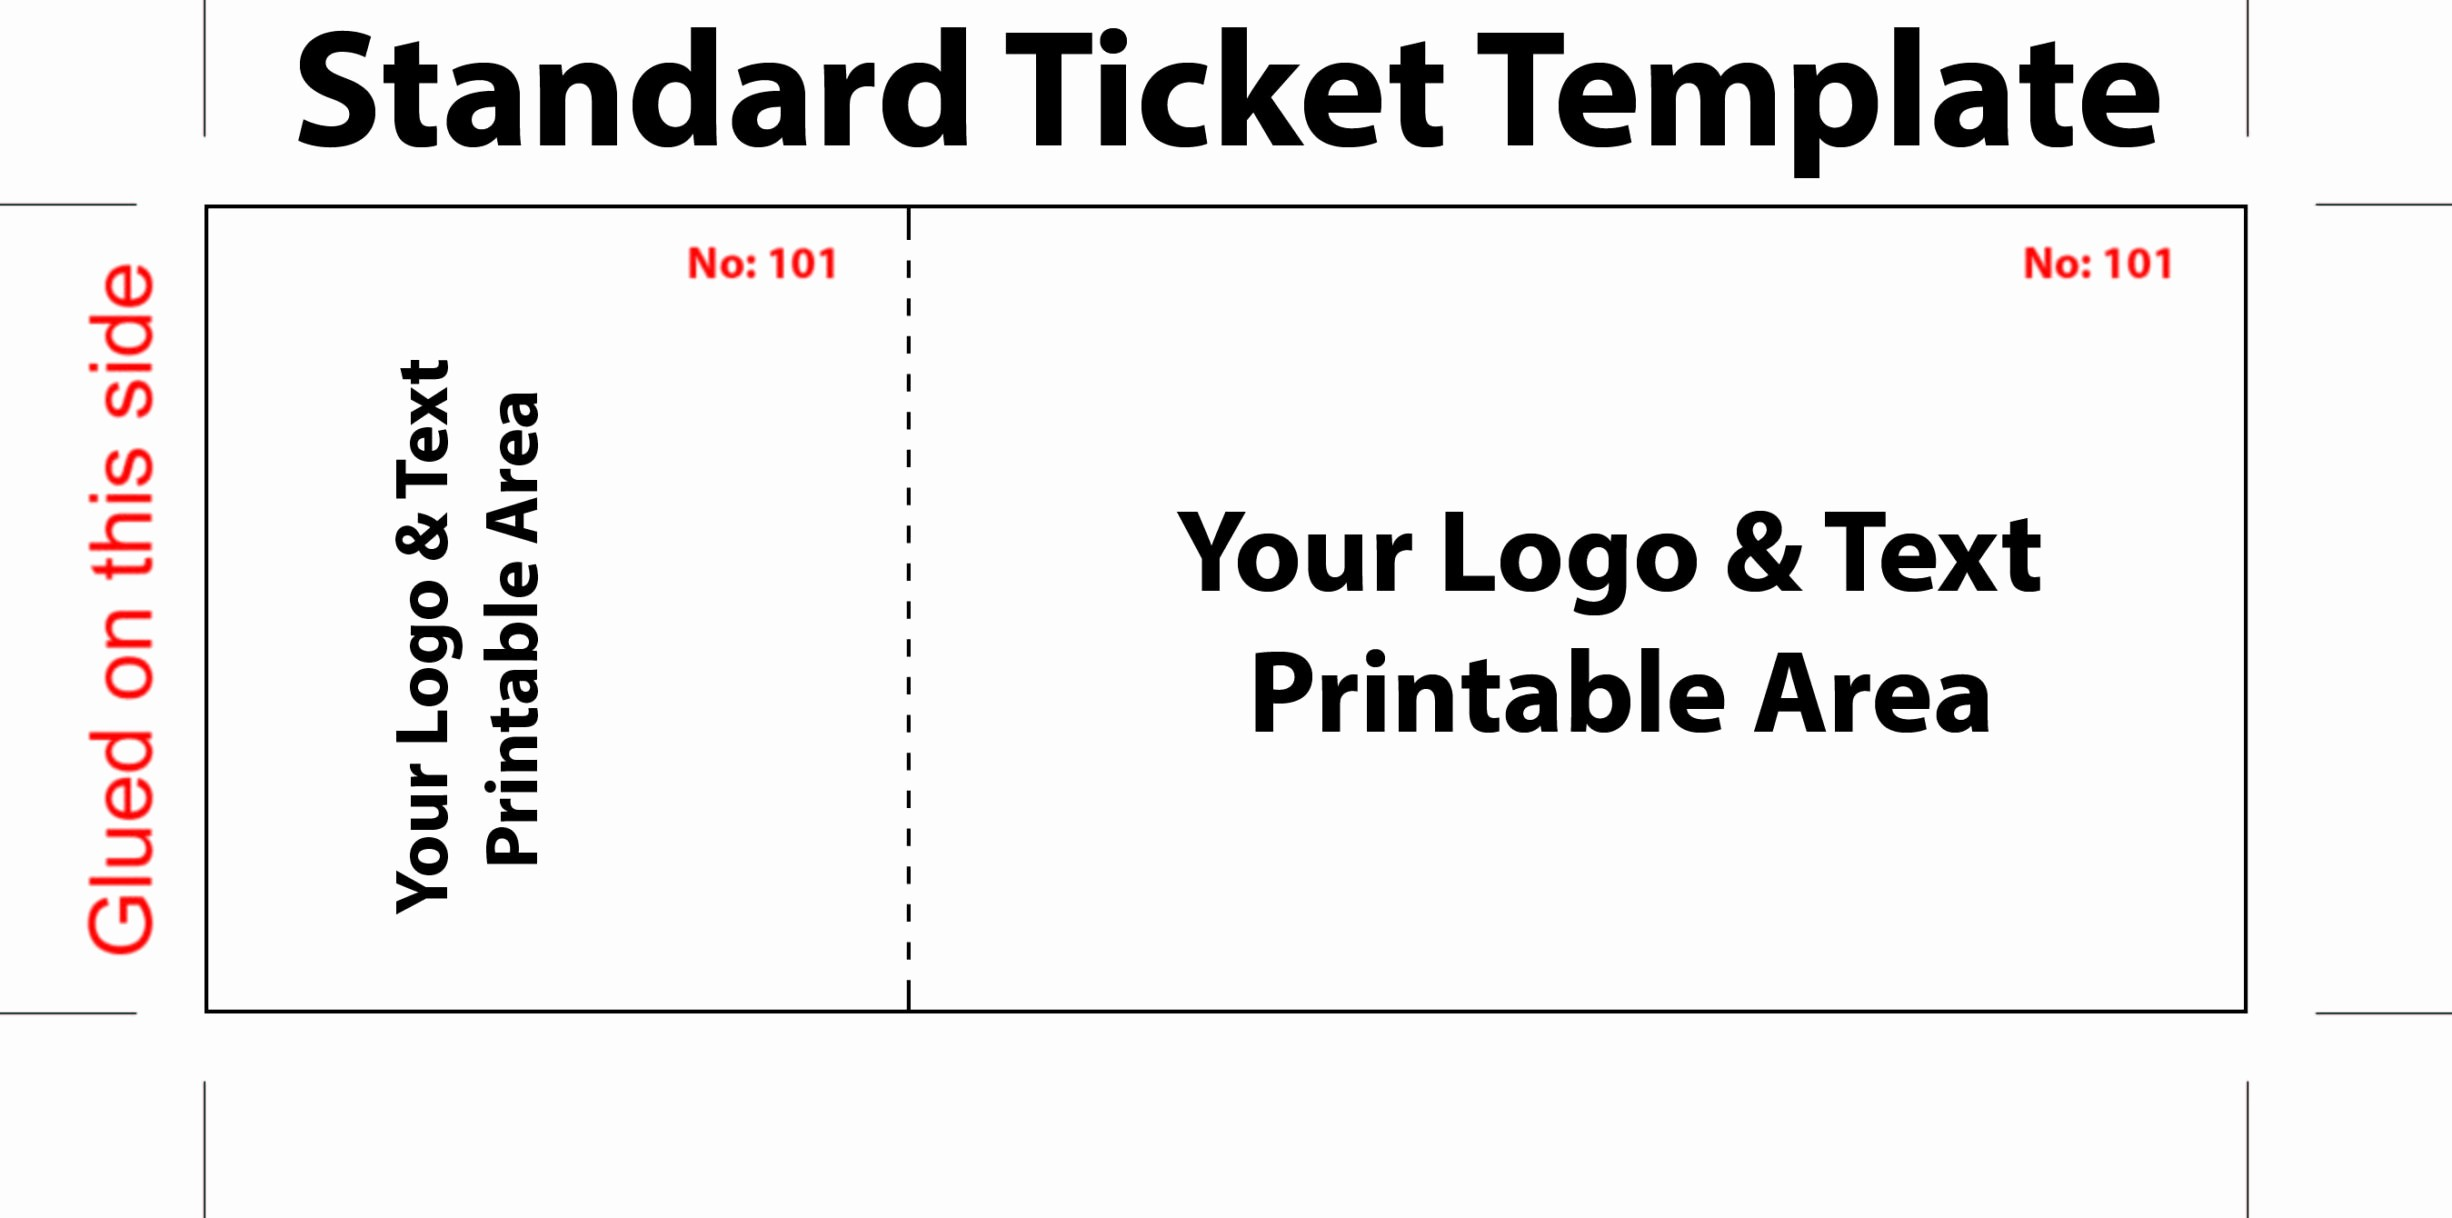 Free Ticket Template for Word Luxury Ticket Layout Template Portablegasgrillweber